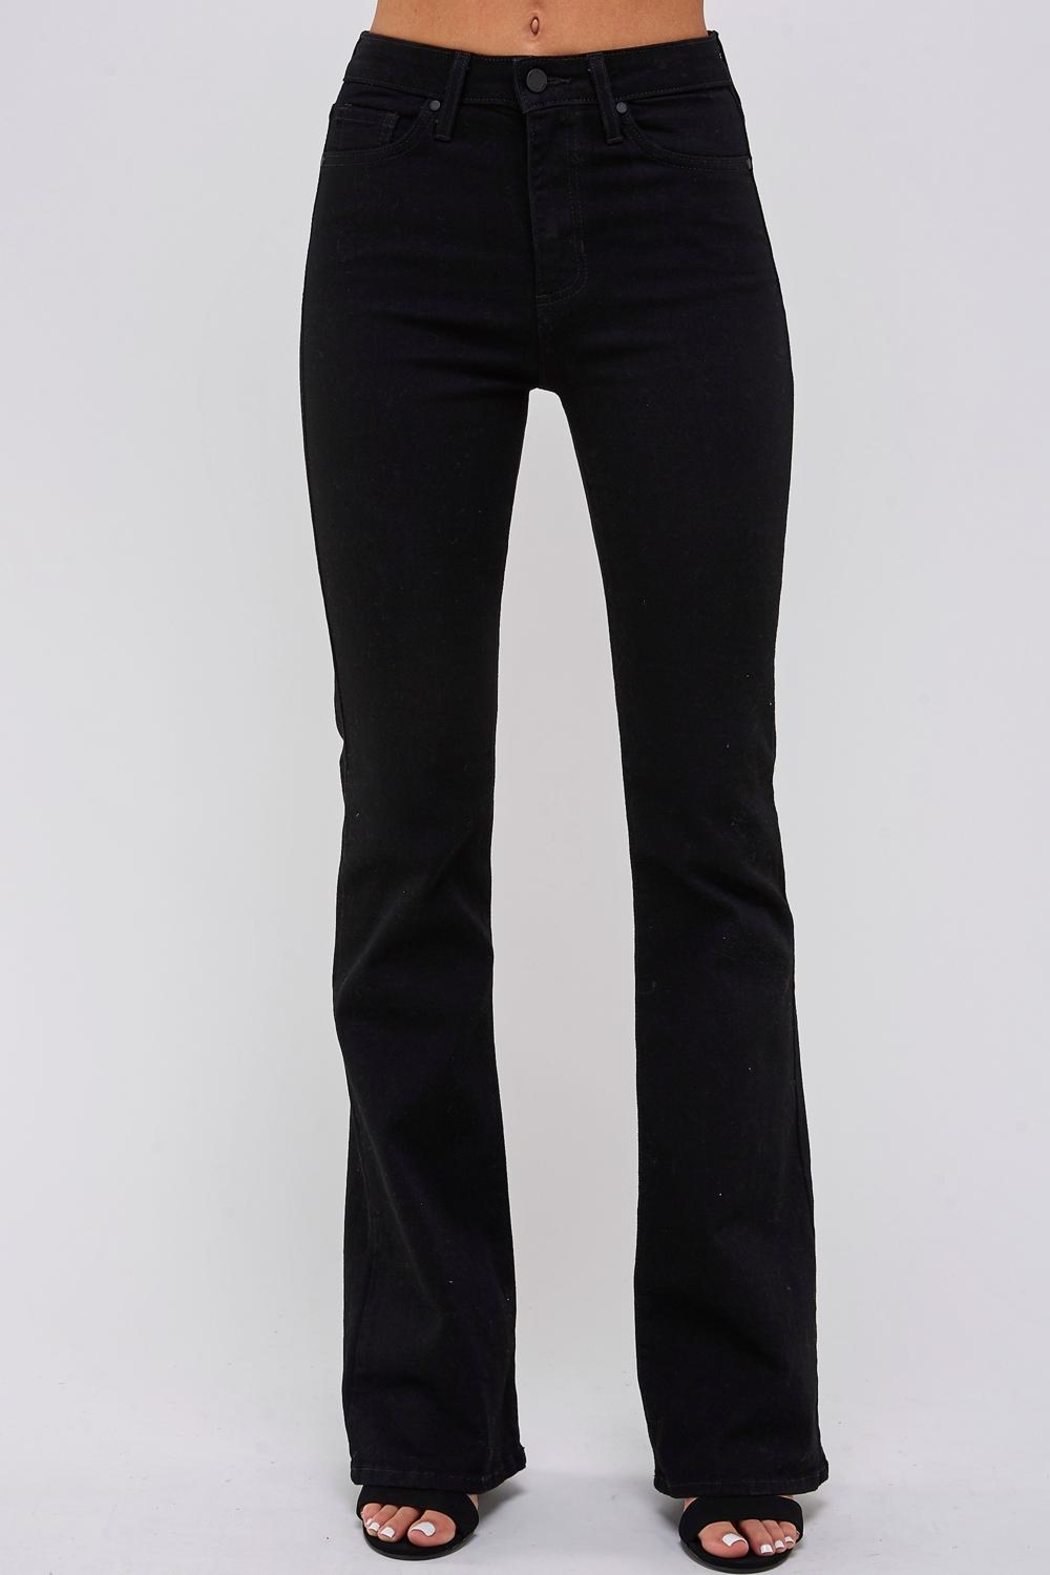 just black Flare Bottom Jeans - Front Full Image